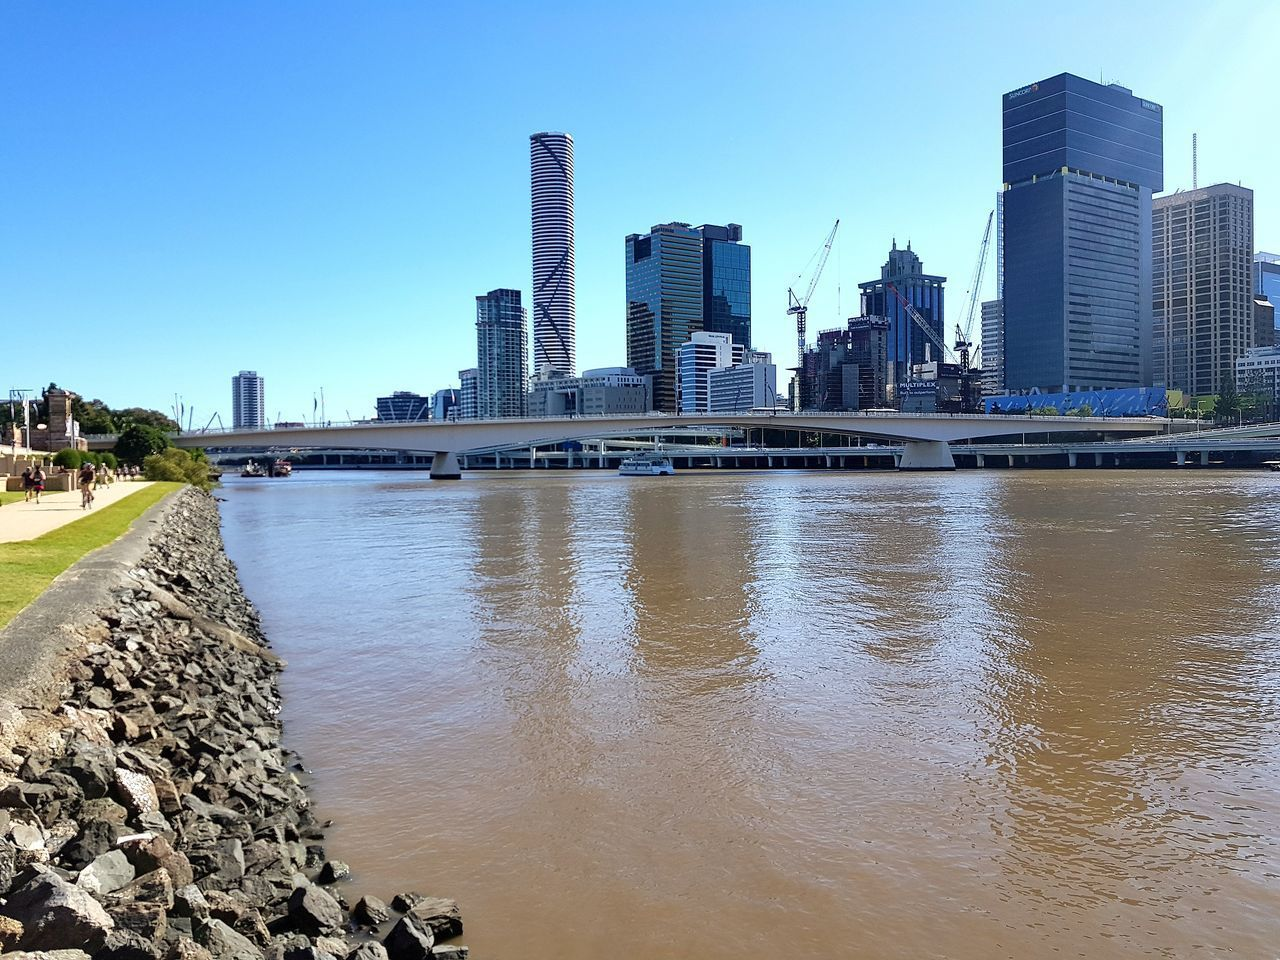 architecture, skyscraper, building exterior, built structure, city, tall - high, water, modern, downtown district, urban skyline, tower, day, sky, travel destinations, outdoors, financial district, cityscape, clear sky, tree, no people, nature